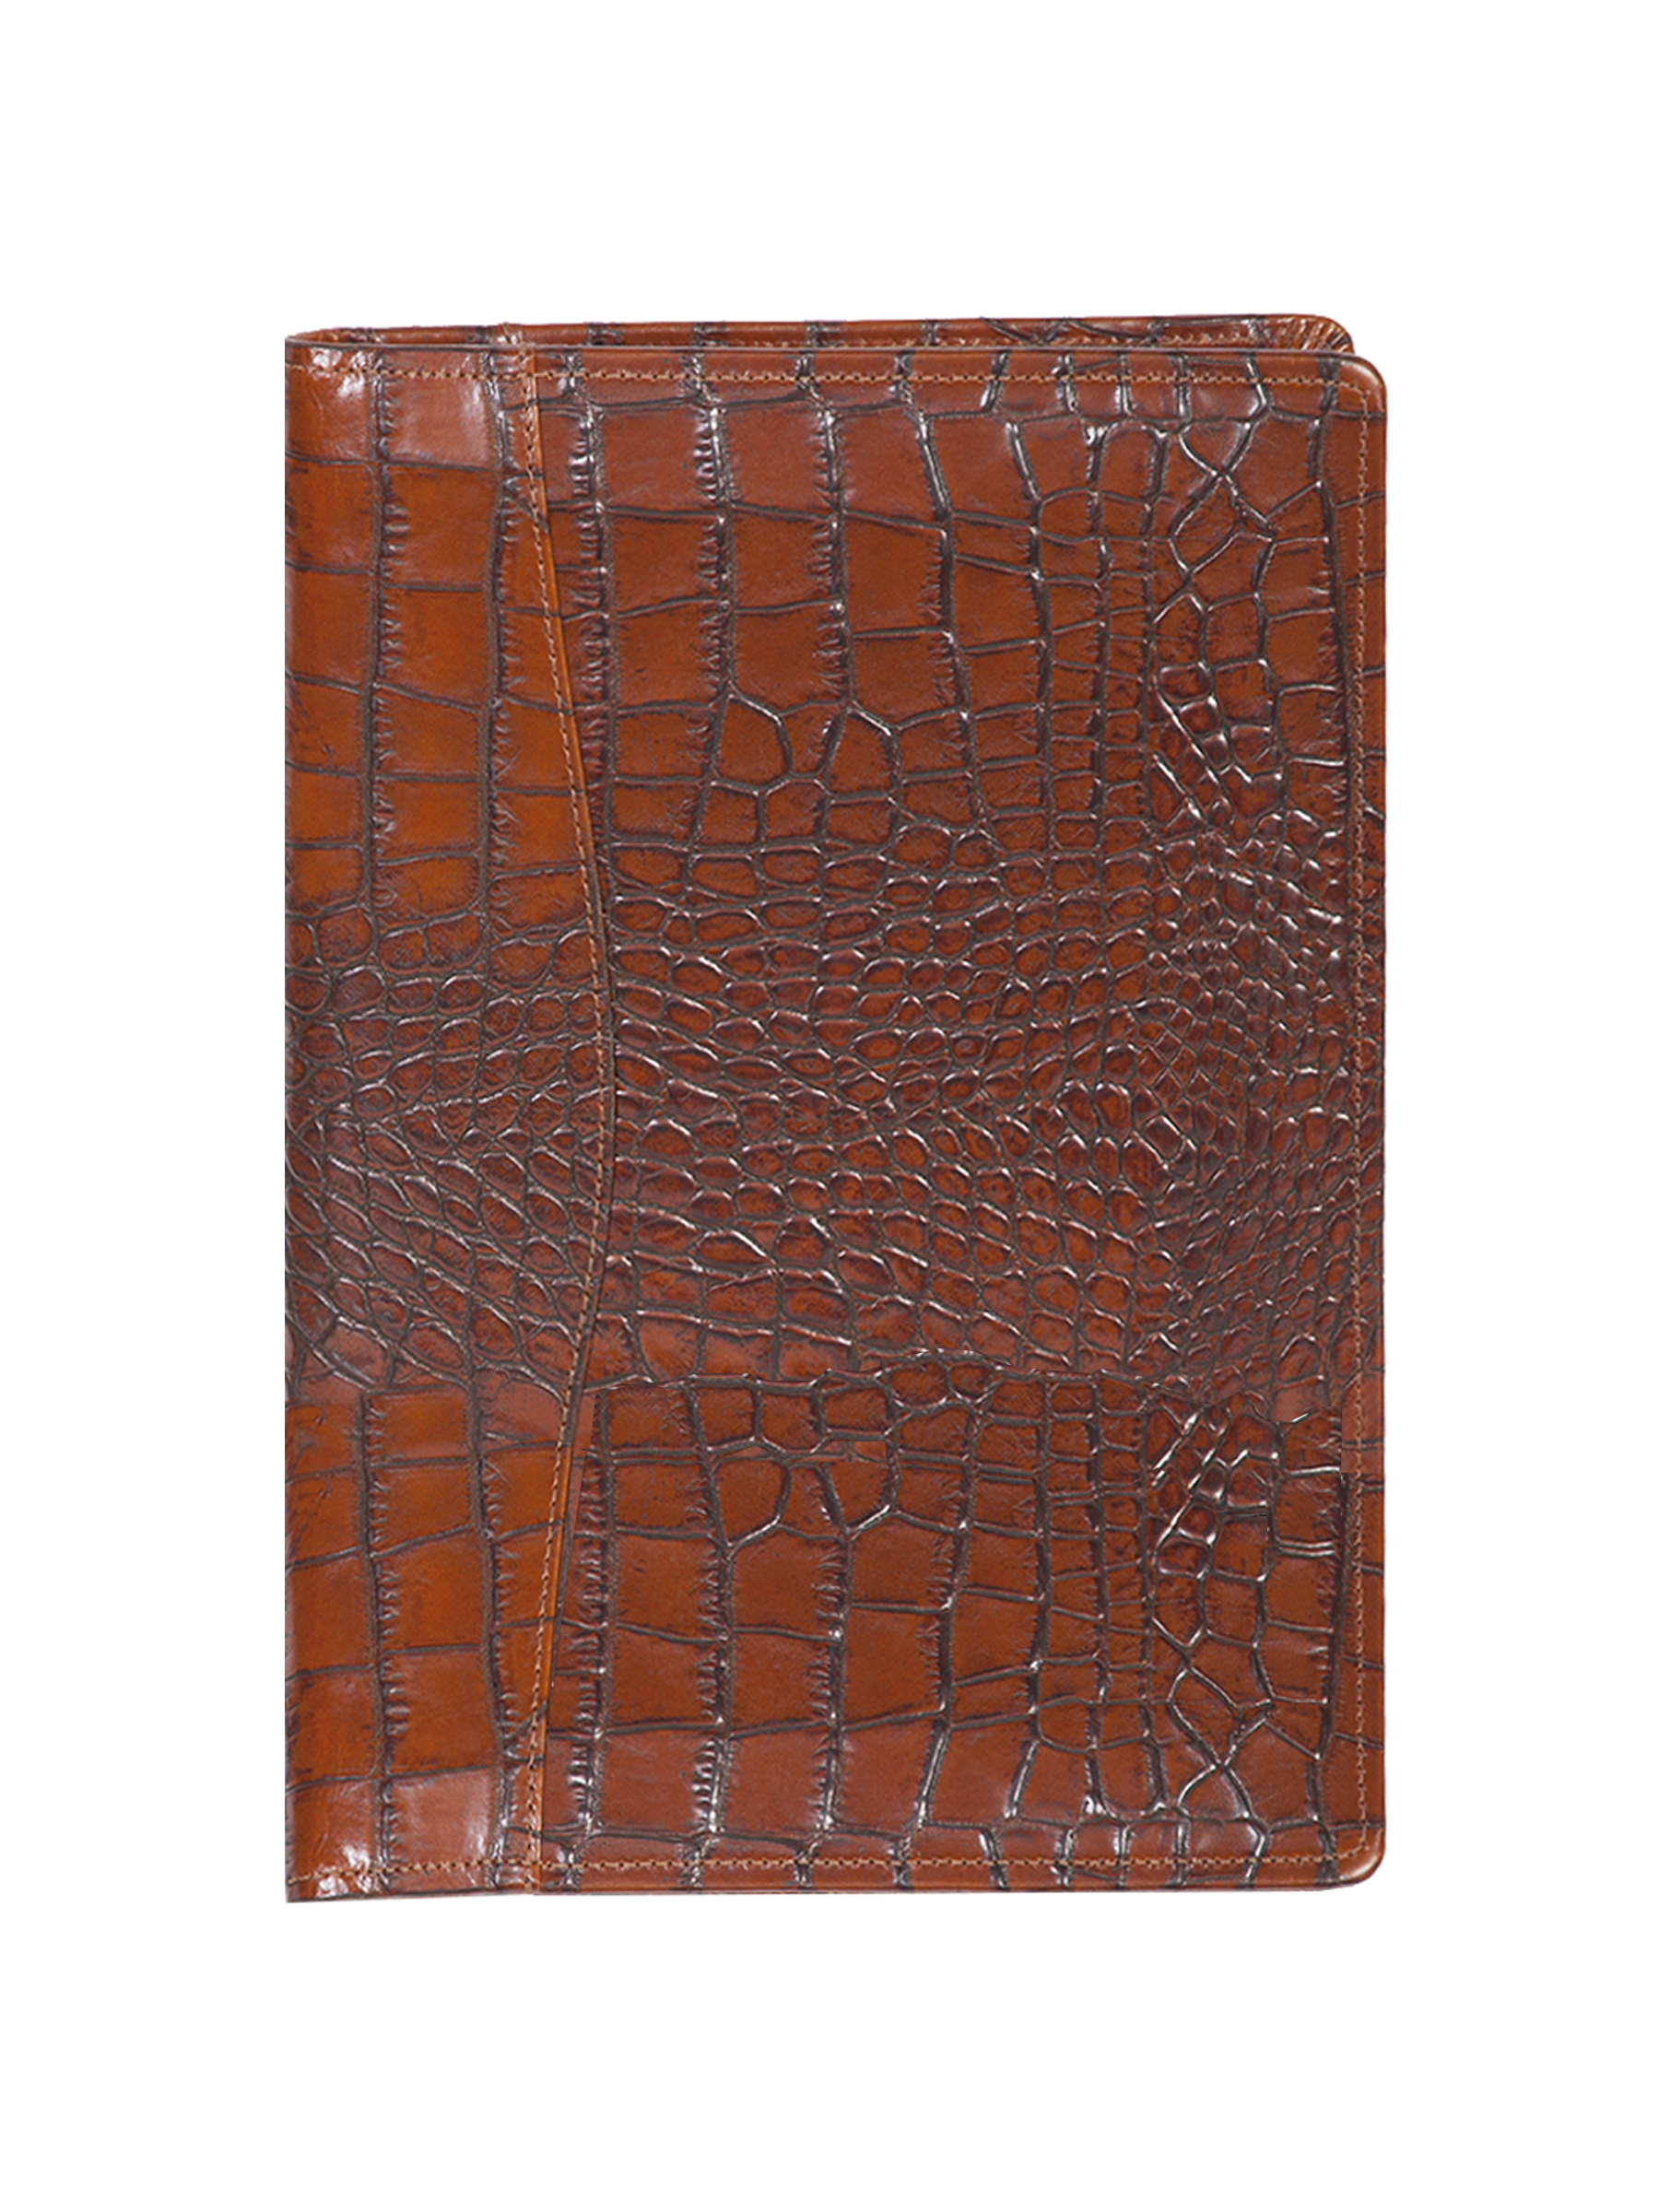 Leather ruled journal